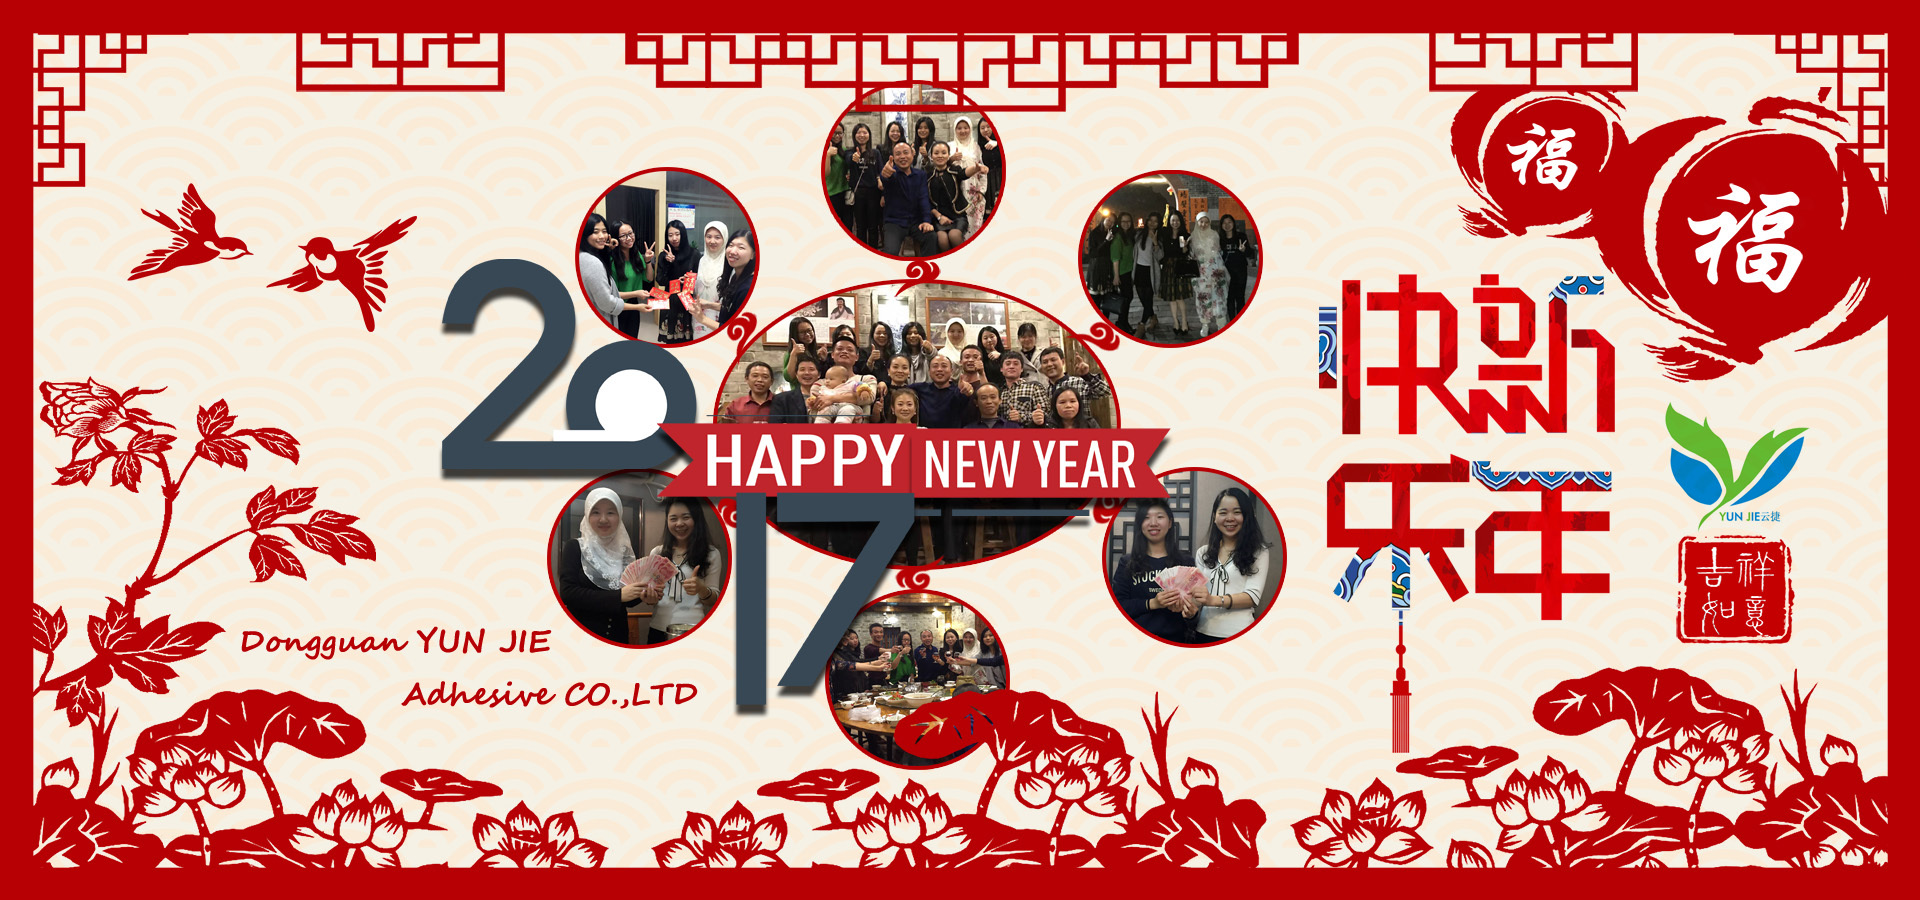 Happy new year! YUNJIE say some Sincere words for you!